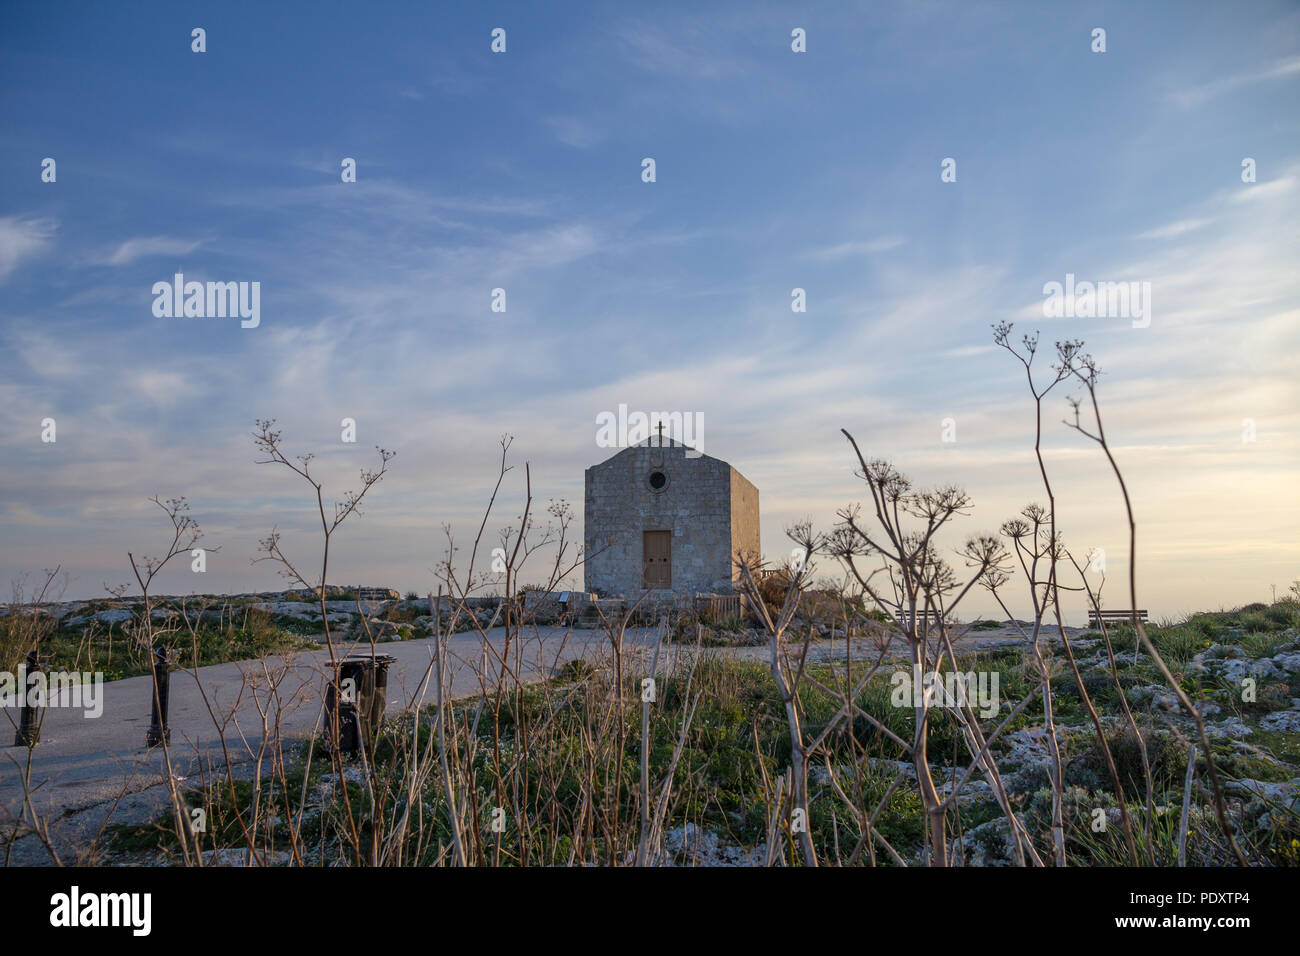 Taken from low perspective through delicate, dried-out flower stems, Malta's simple St. Mary Magdelene Chapel is illuminated by golden hour glow. - Stock Image